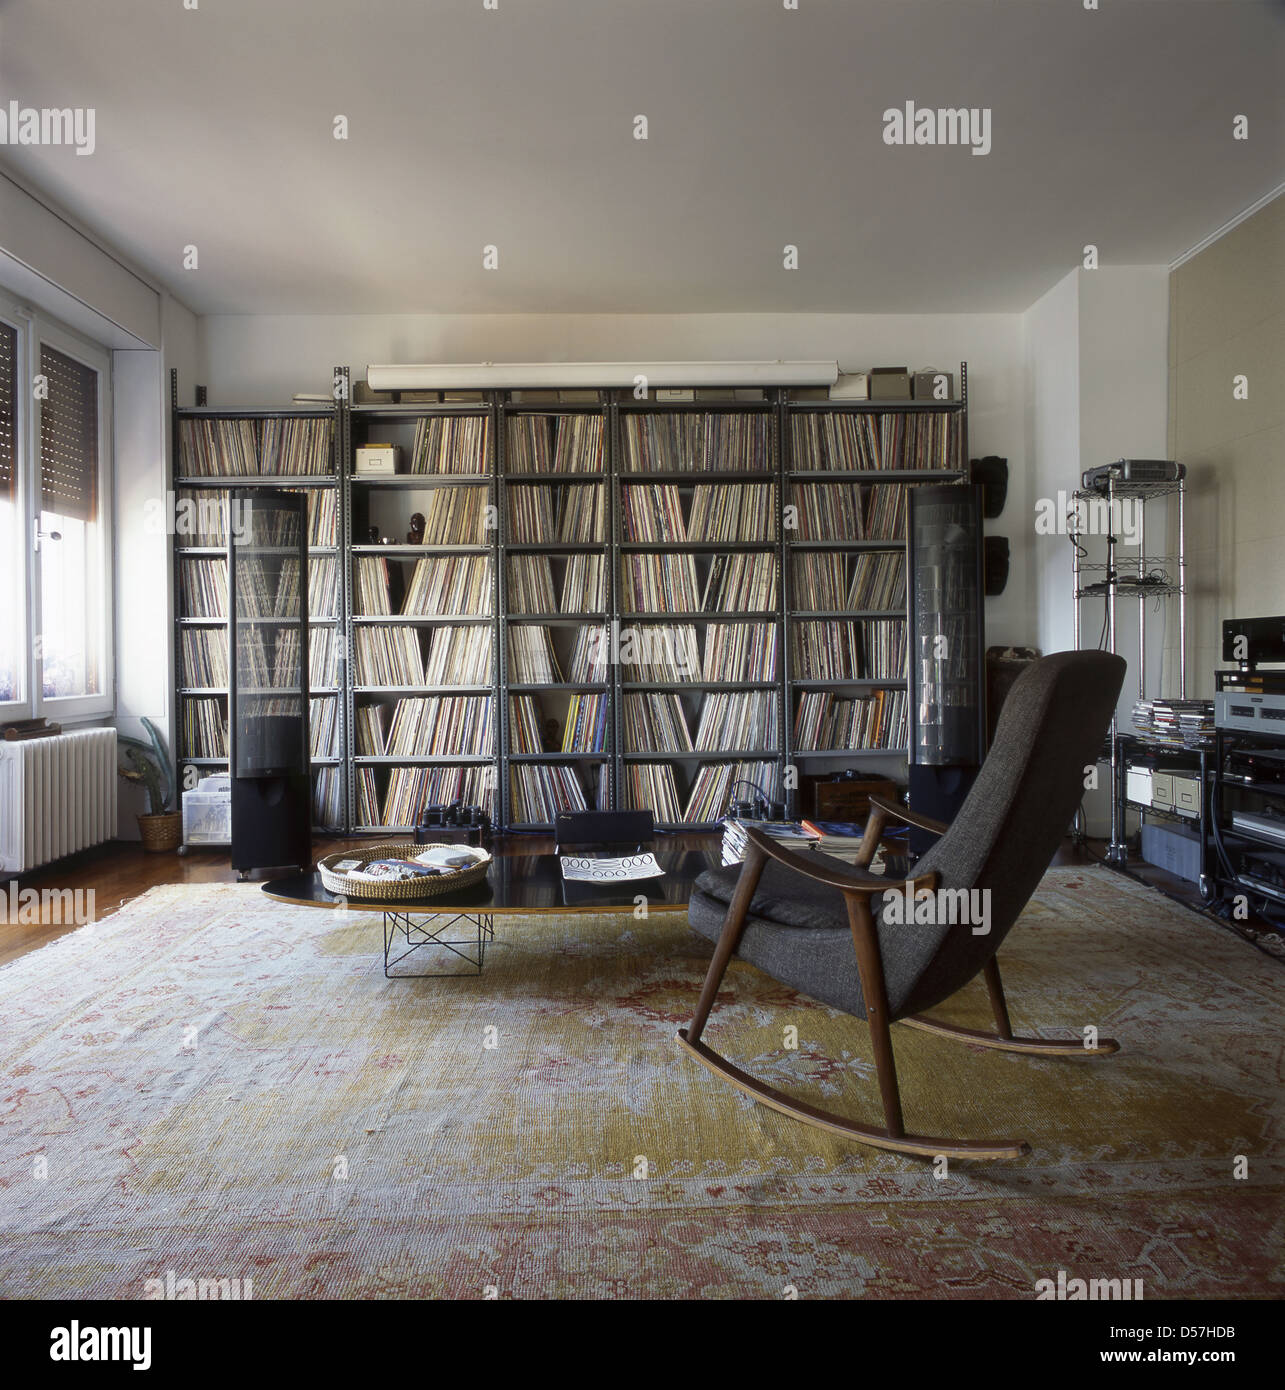 Interior of a living room in an apartment with a rocking chair and  bookshelves with plenty - Interior Of A Living Room In An Apartment With A Rocking Chair And